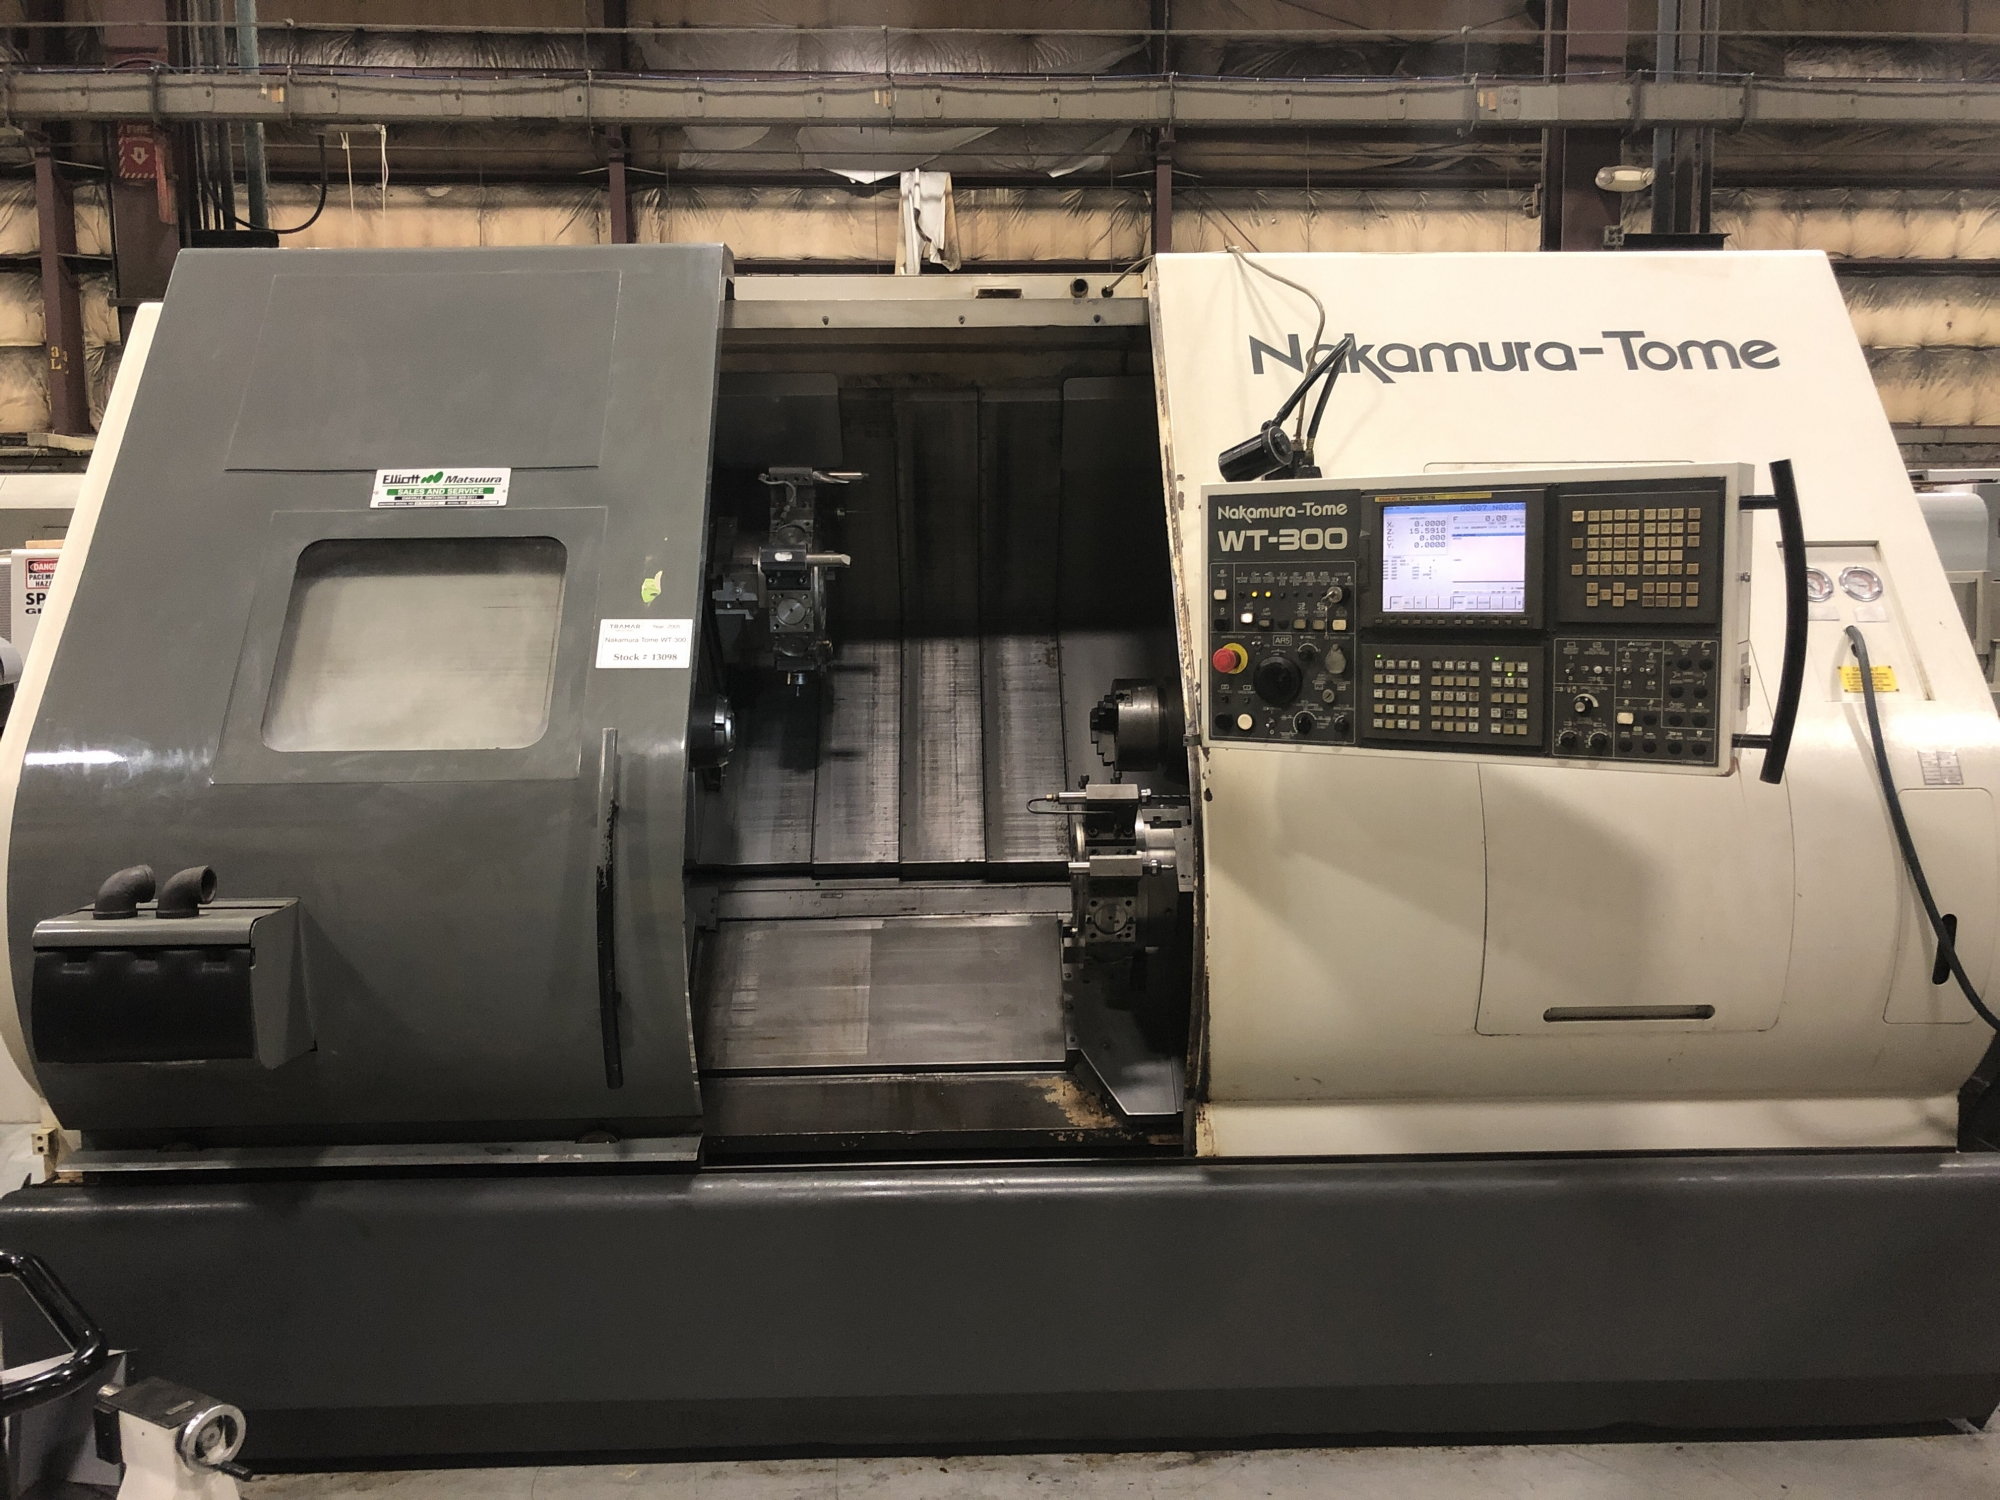 2005 NAKAMURA-TOME WT-300MMYS